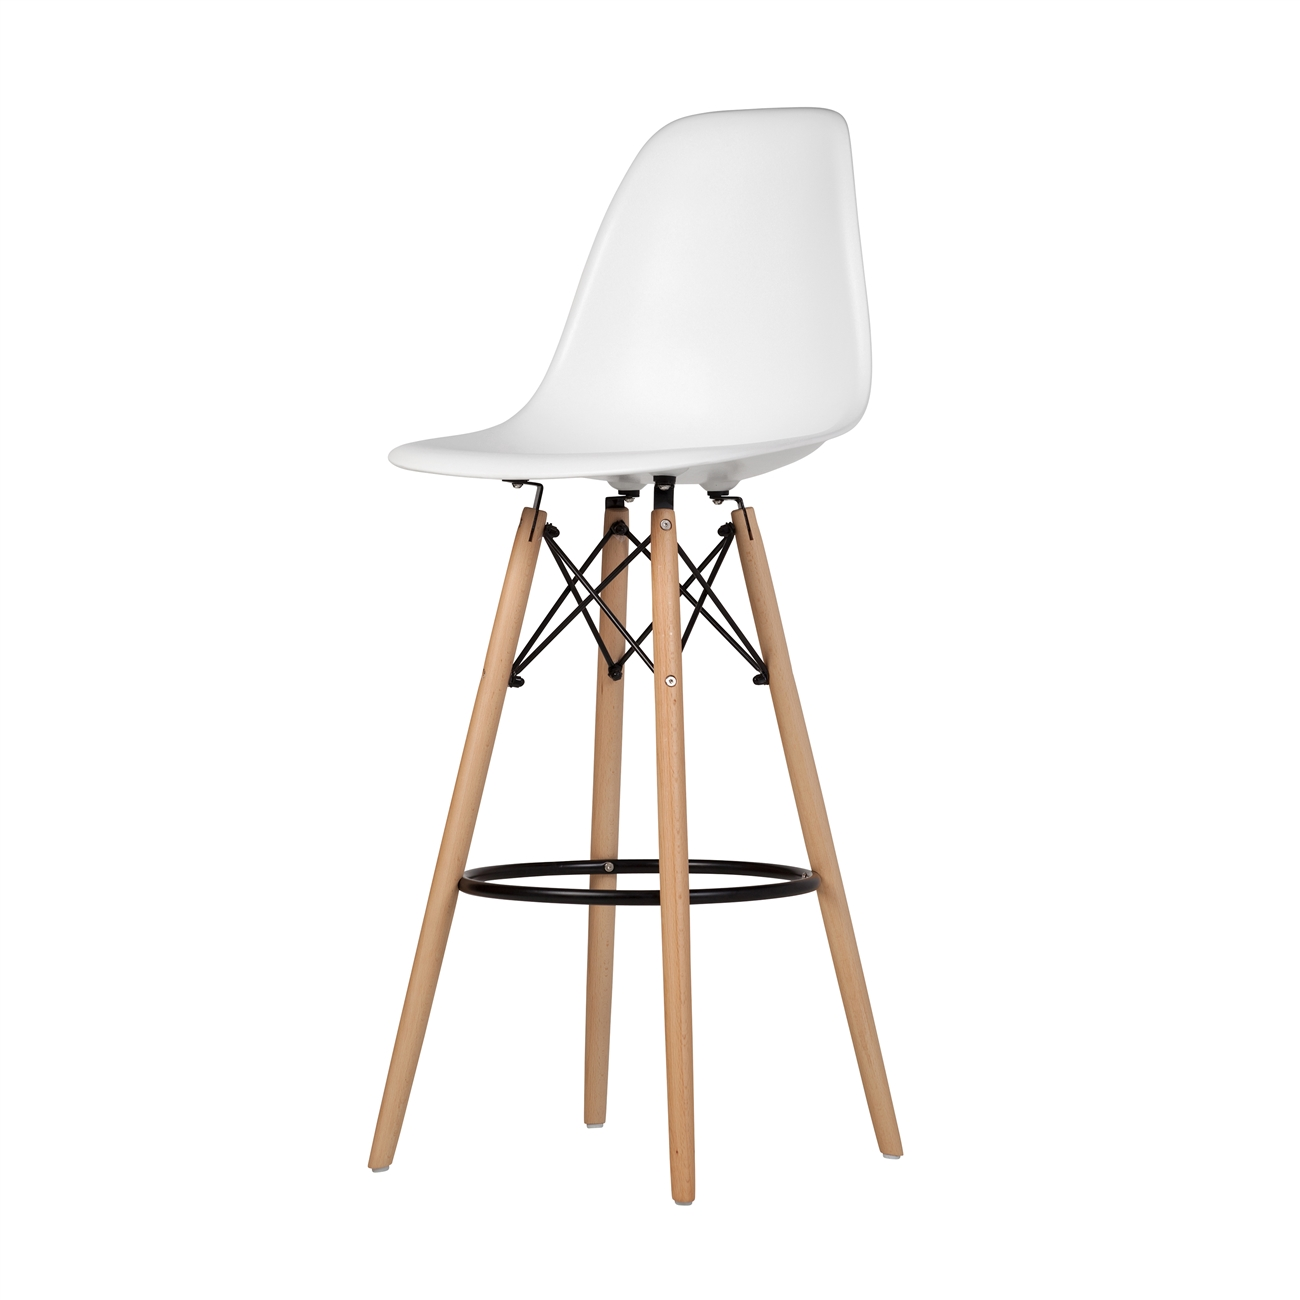 Charles Eames Style DSW Bar Stool   White Larger Photo Email A Friend